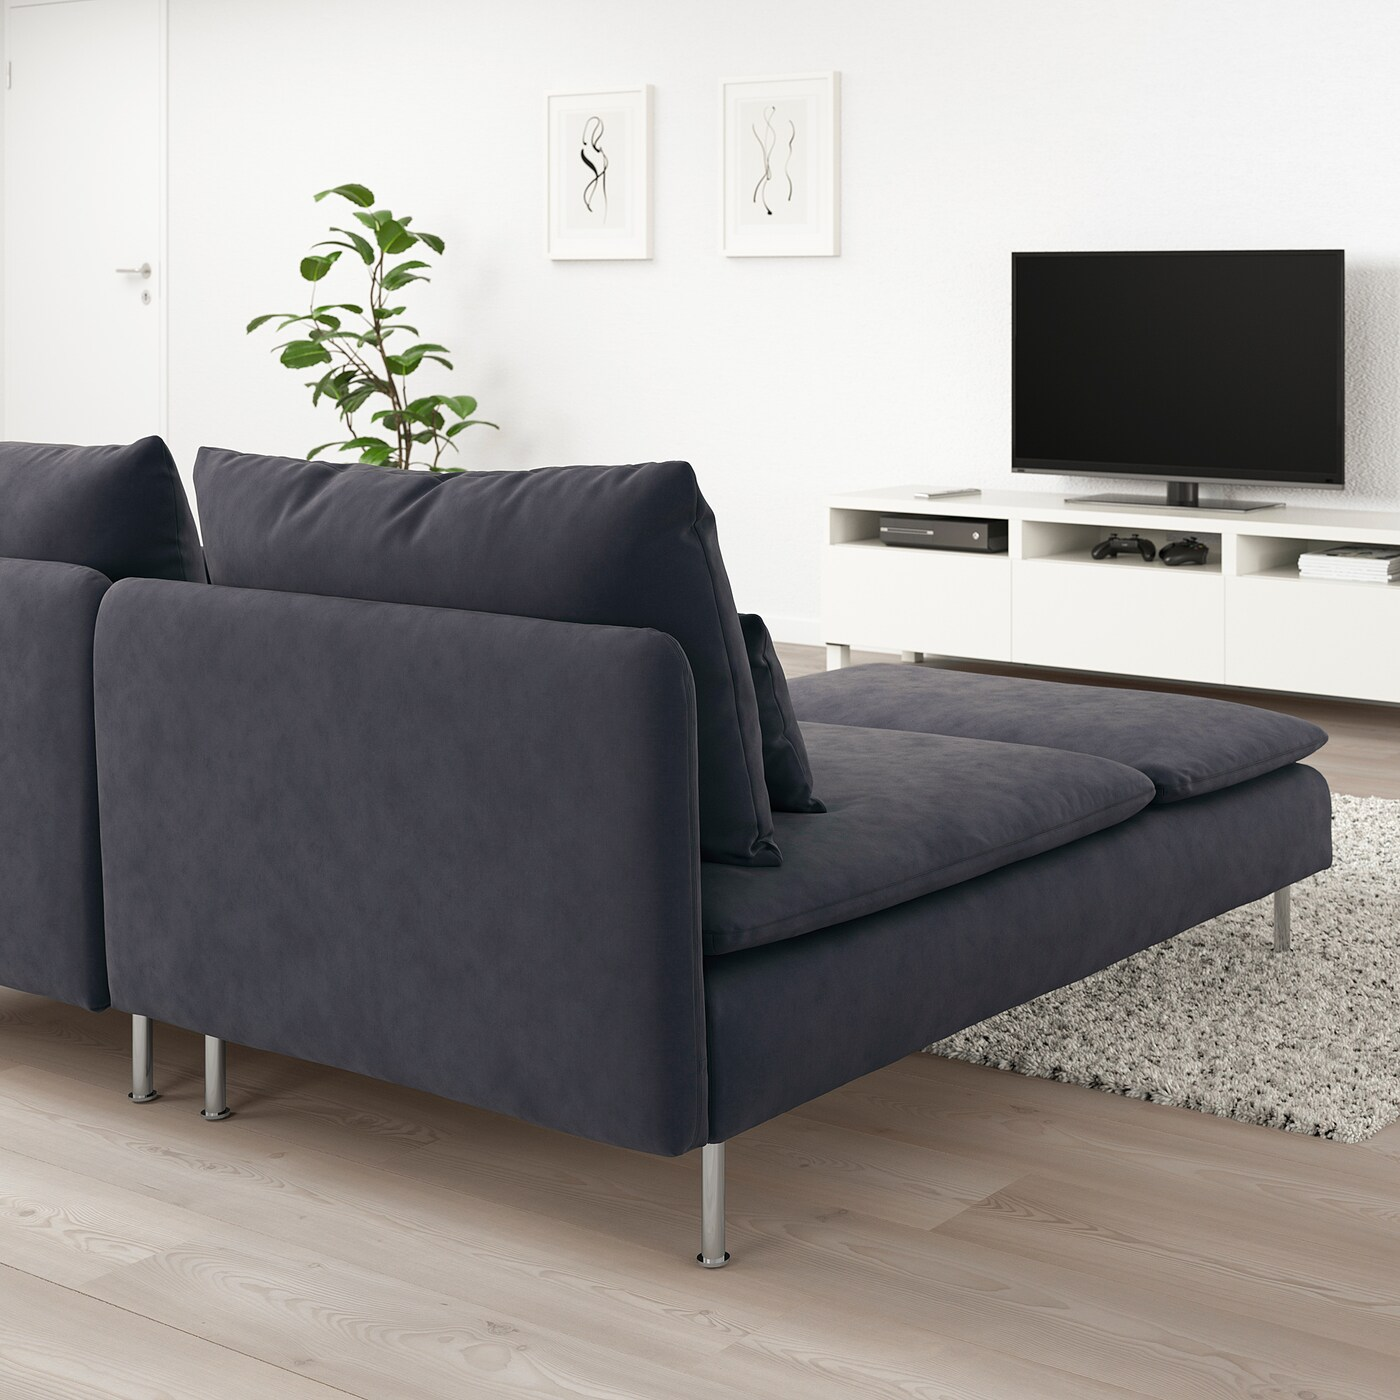 SÖderhamn With Chaise Longue Samsta Dark Grey 2 Seat Sofa Ikea